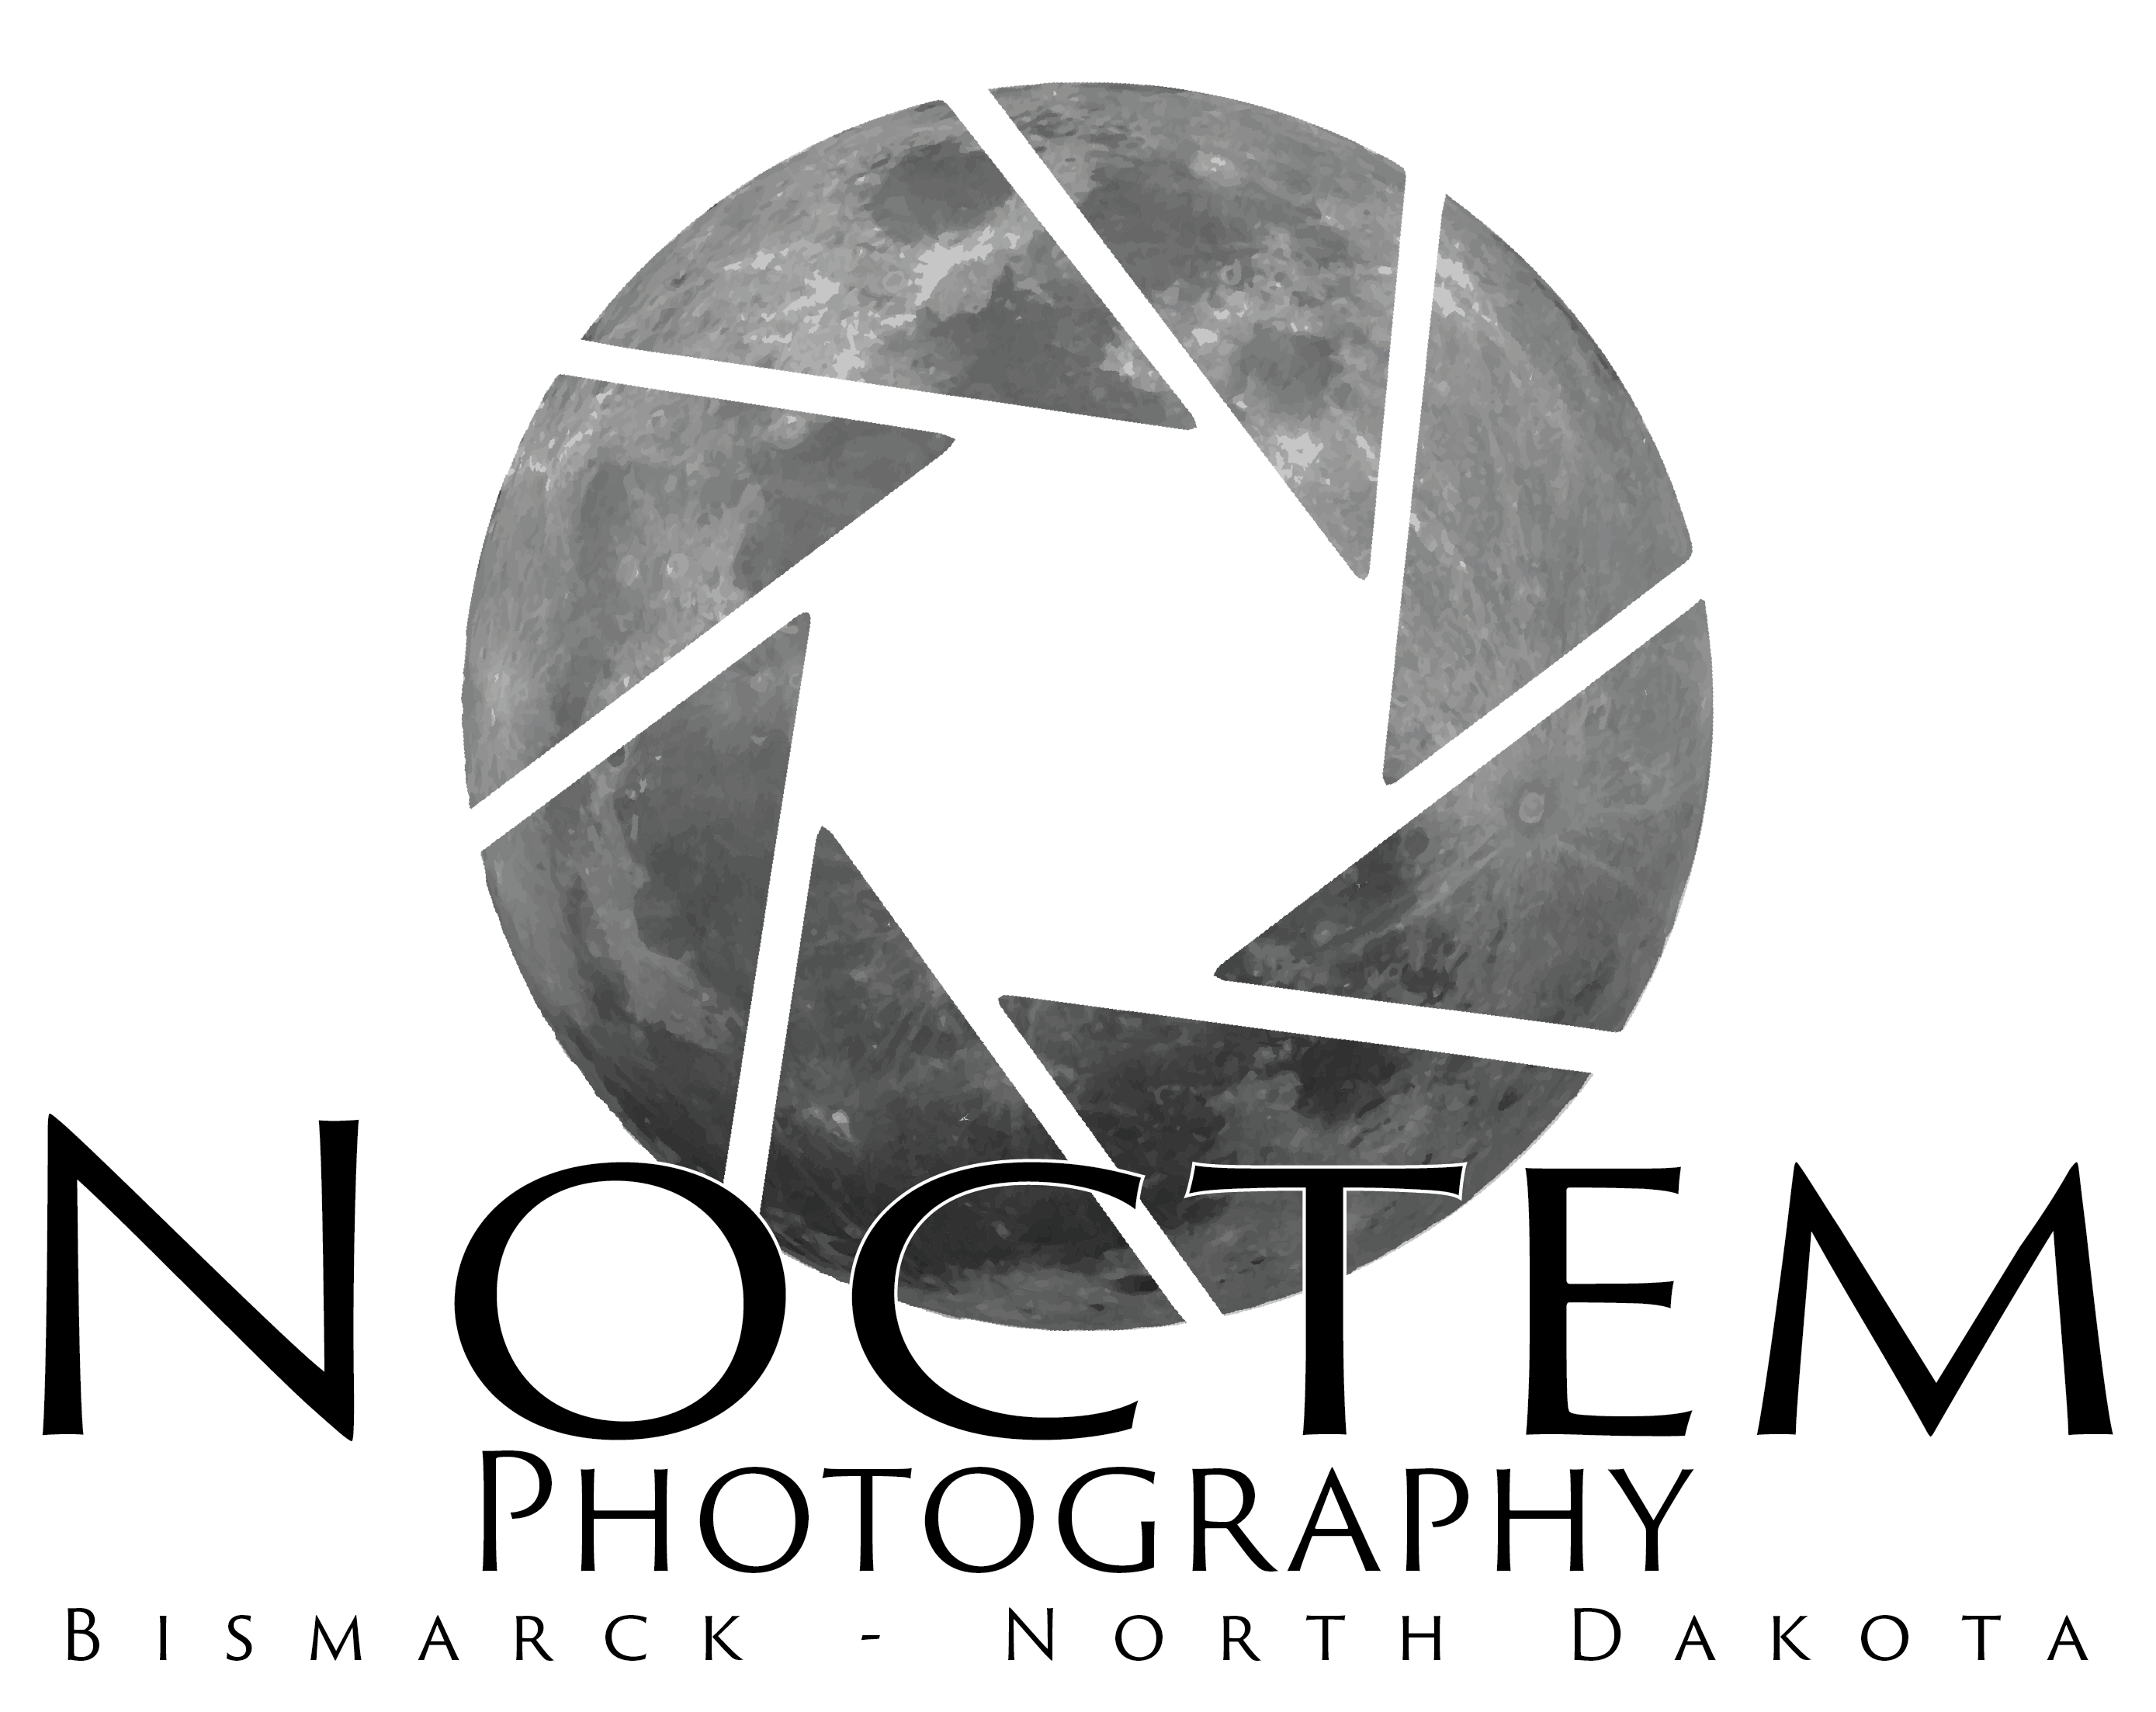 Noctem Photography floor plan Bismarck